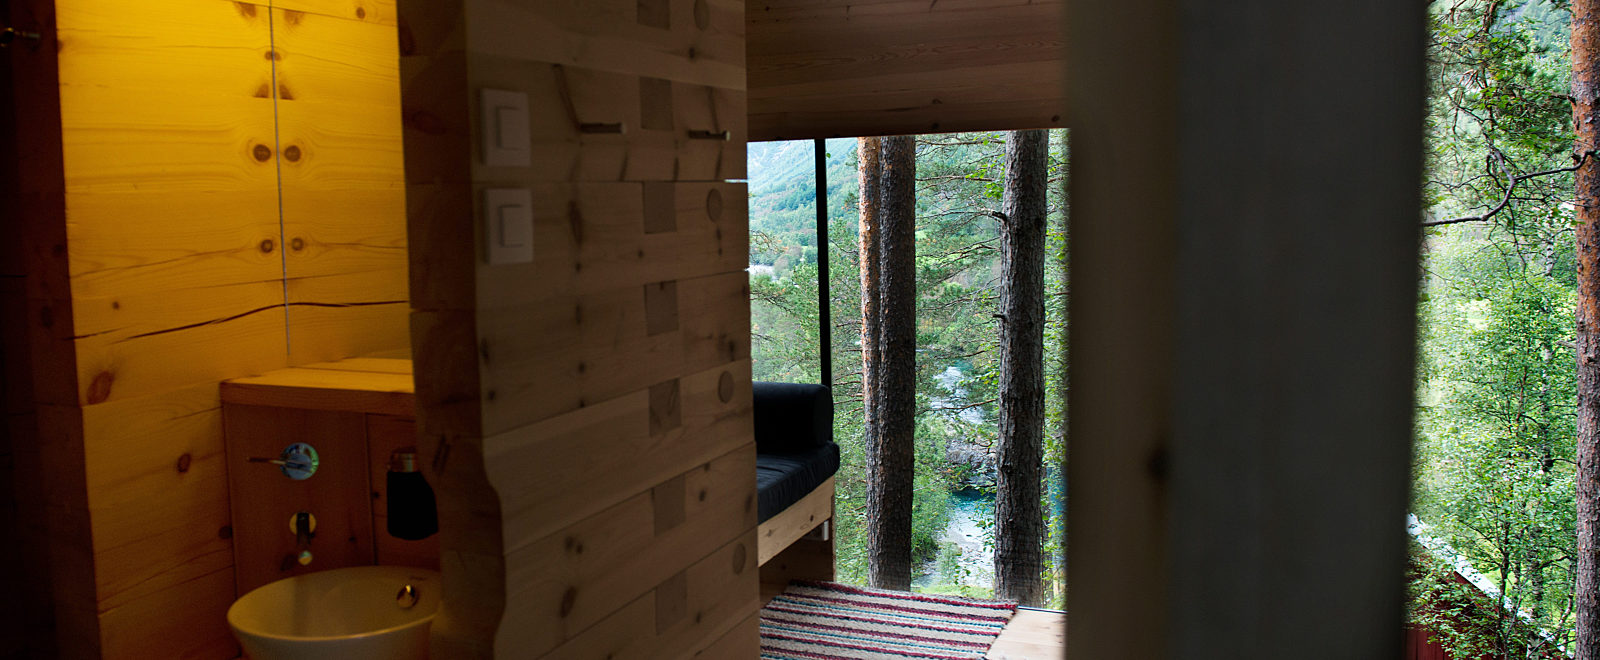 Interior view of a Bird House at Juvet Landscape Hotel.